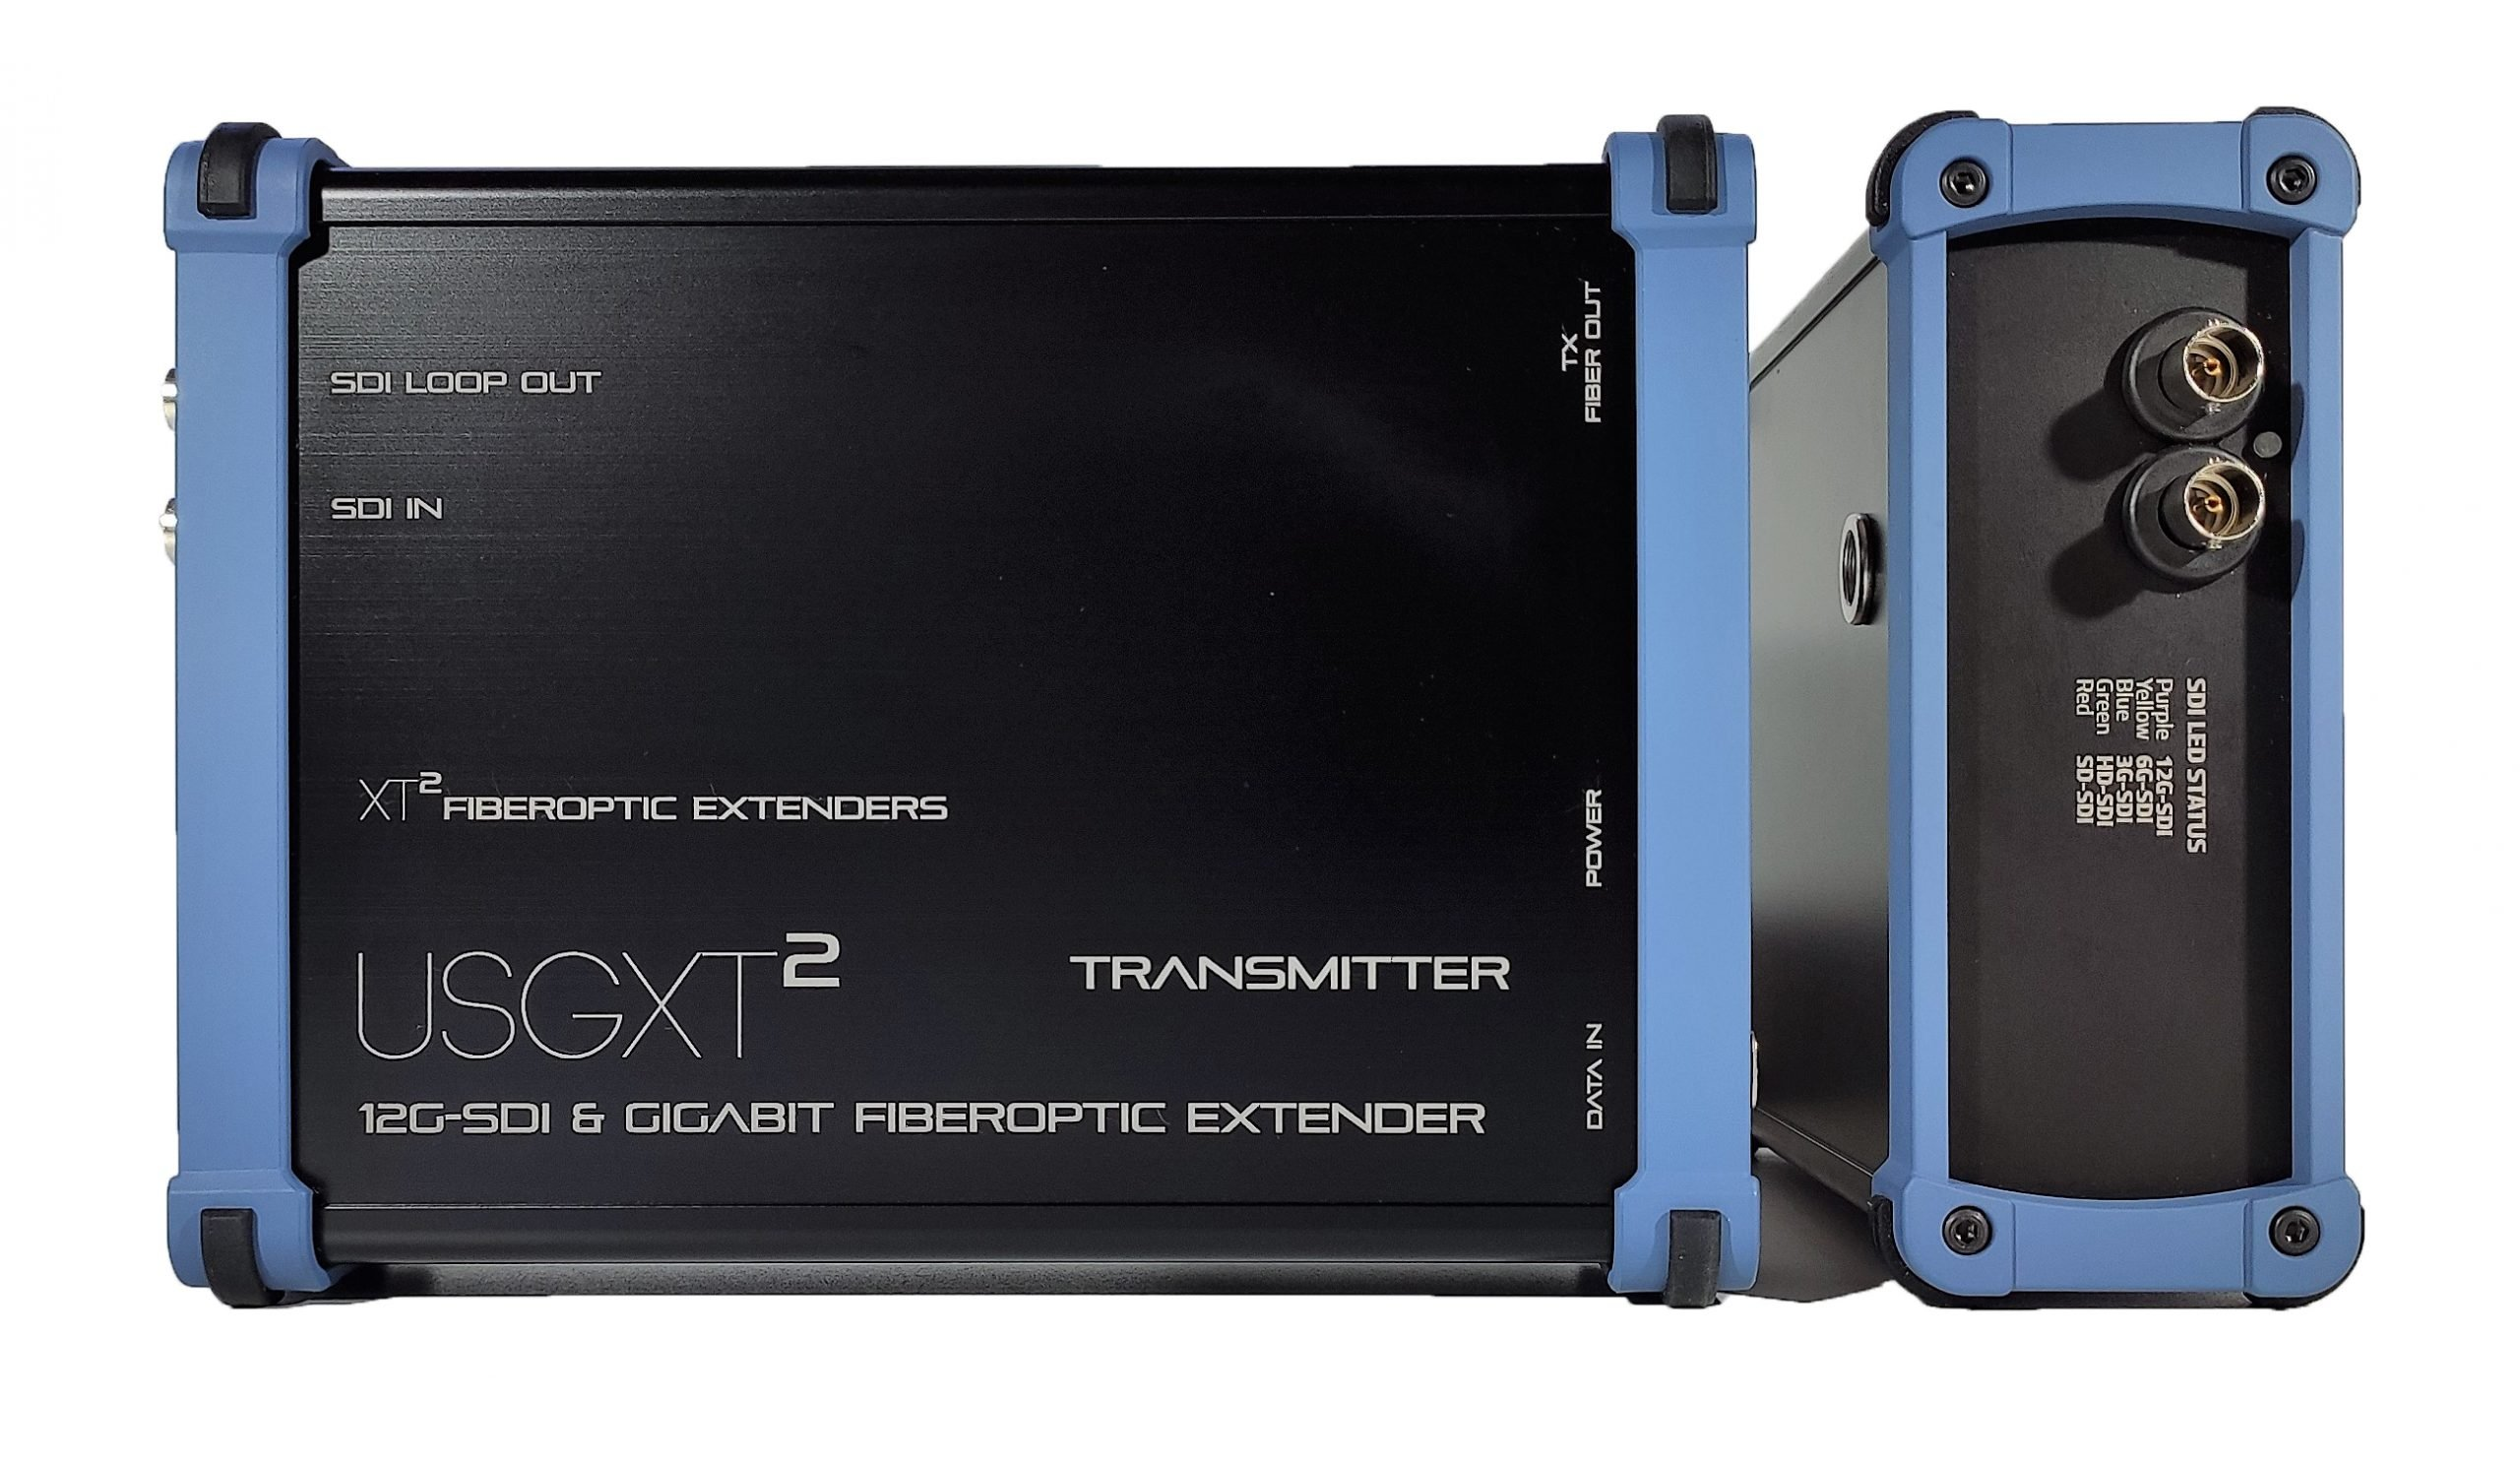 USGXT² - rugged SDI + gigabit ethert over fiber - Heavy Duty Video extenders